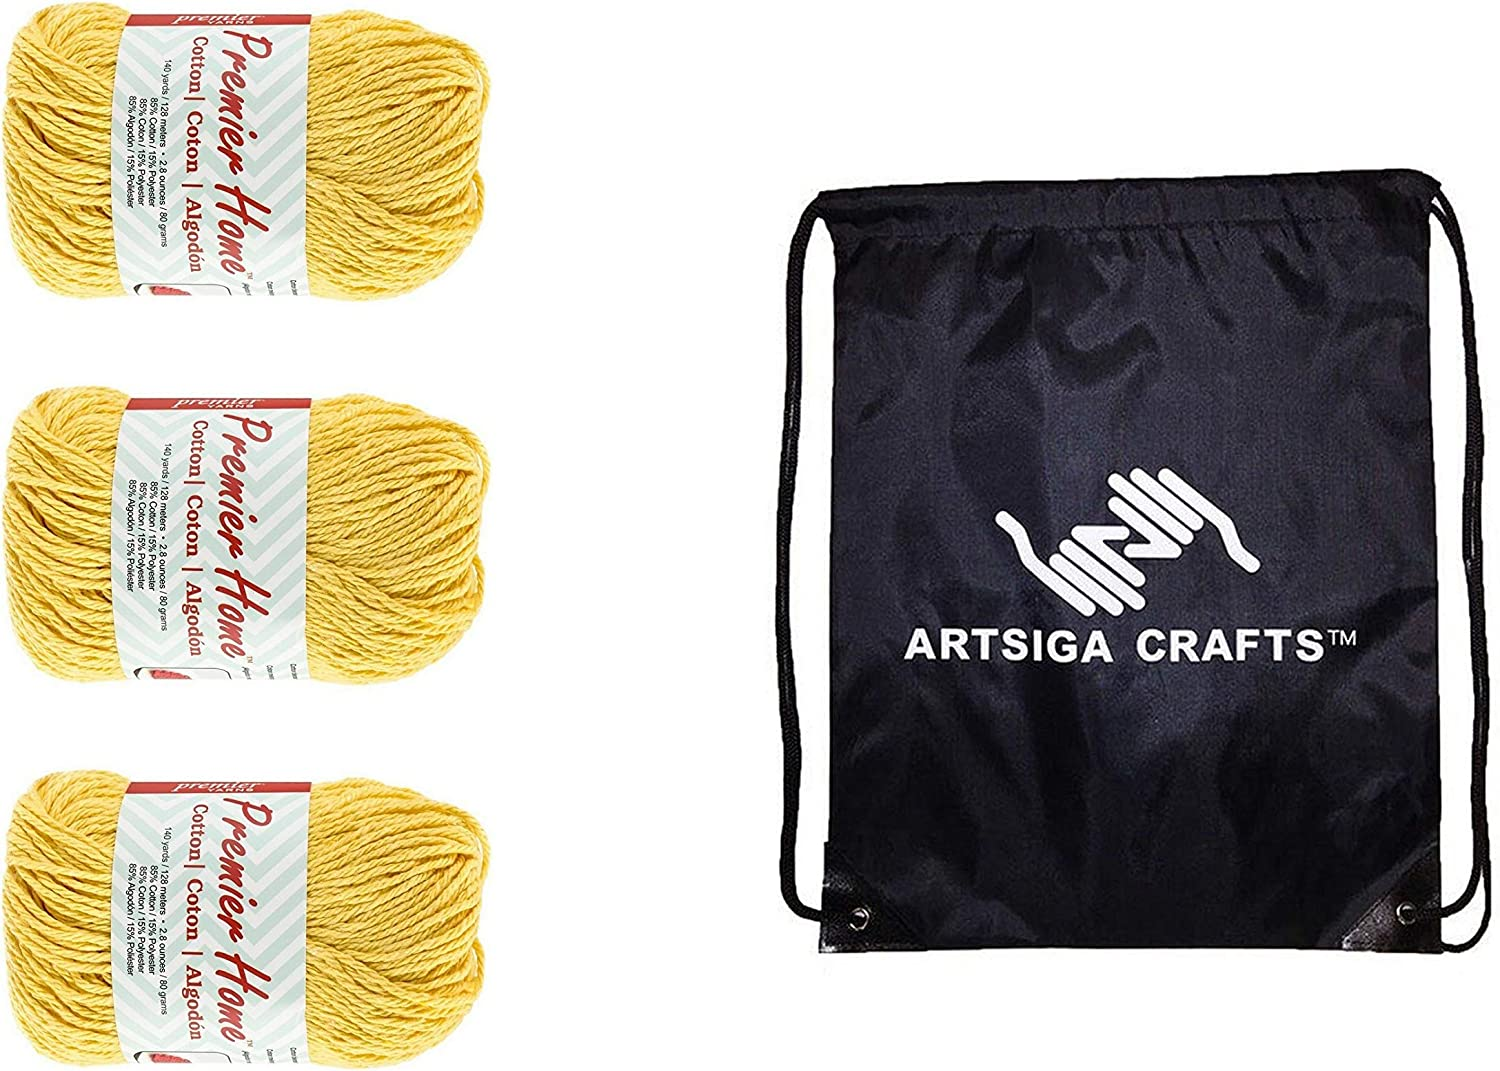 Premier Knitting Yarn Home Cotton Yellow 3-Skein Factory Pack (Same Dye Lot) 38-4 Bundle with 1 Artsiga Crafts Project Bag